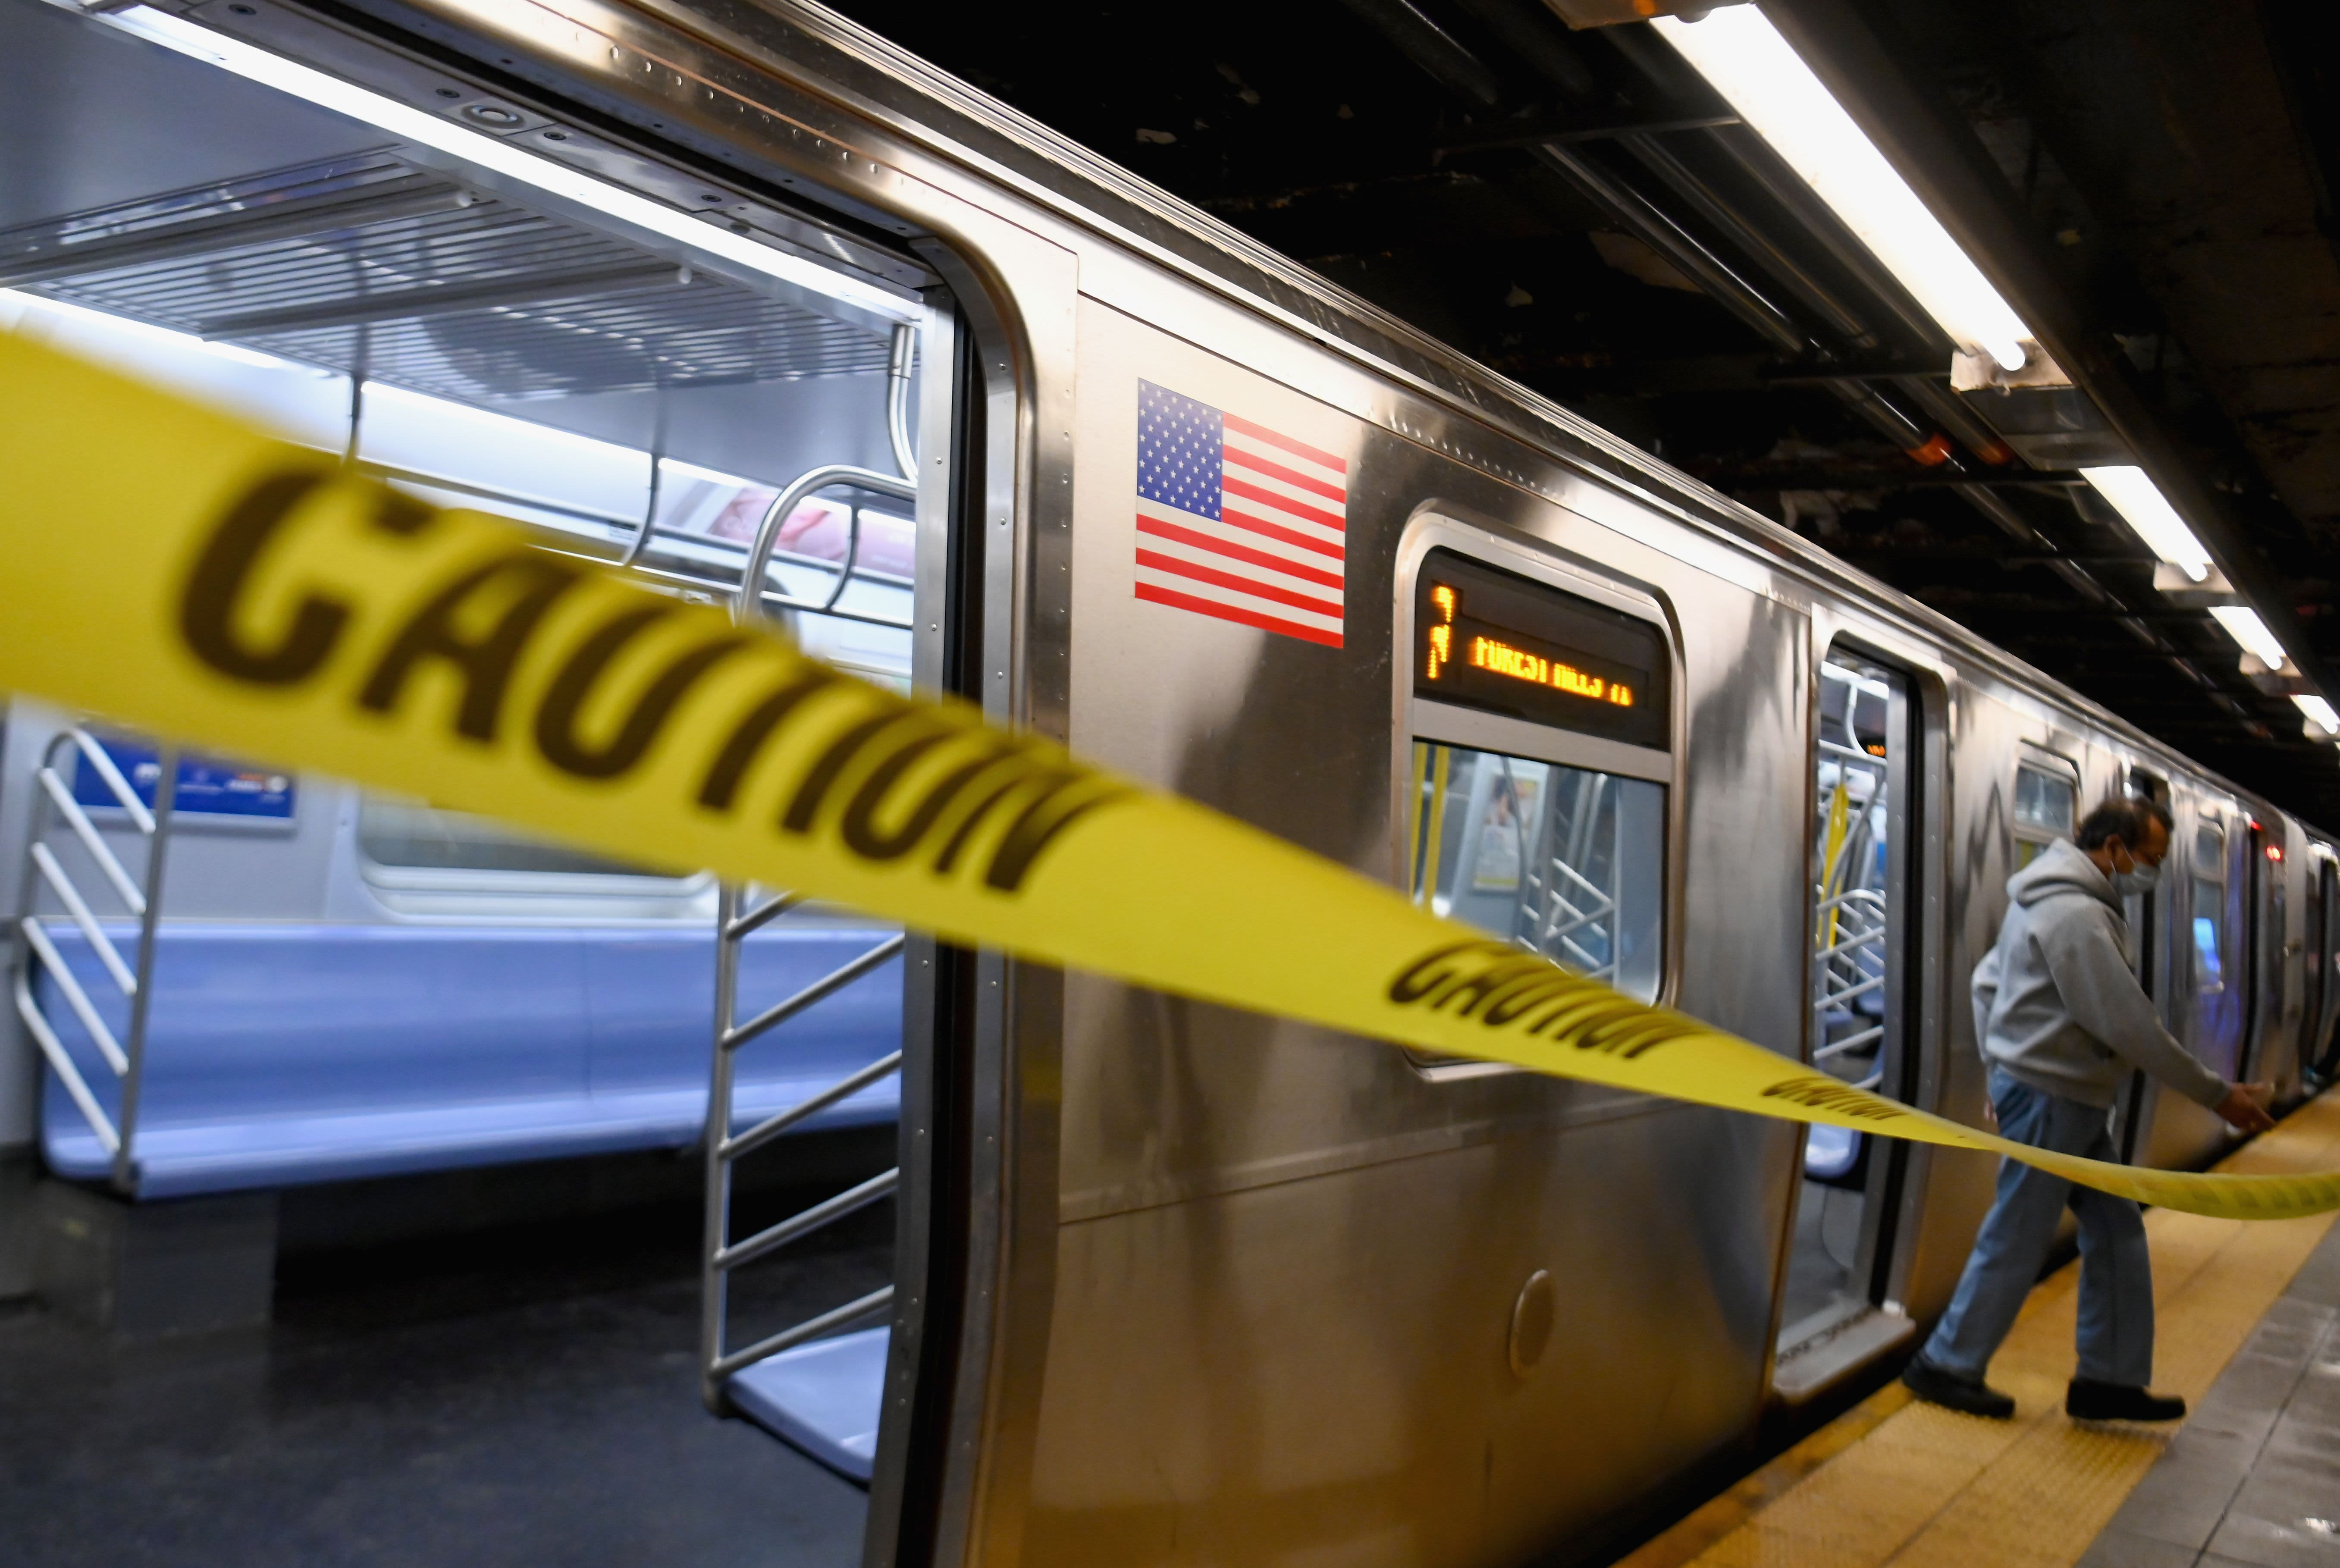 24-hour subway service ends to disinfect trains and buses overnight